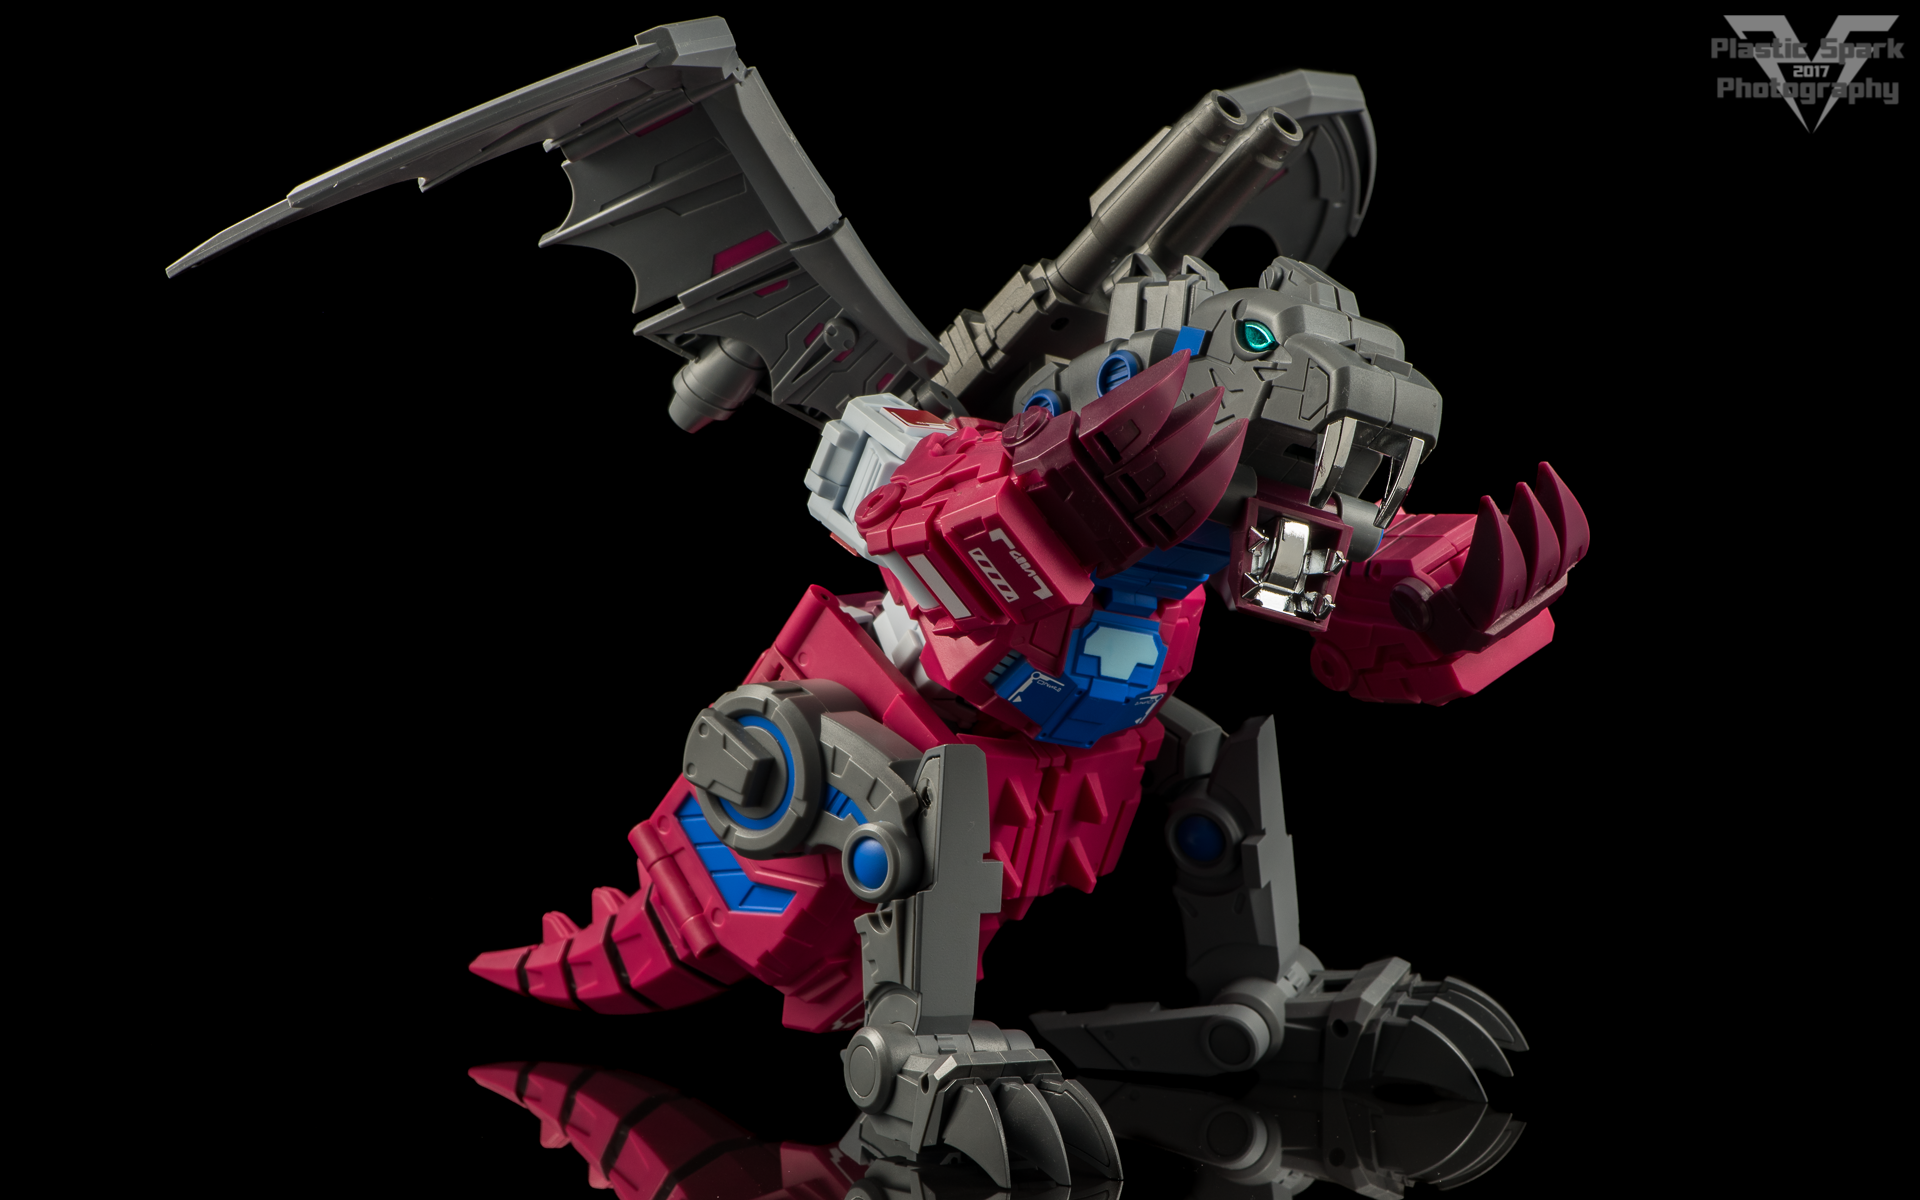 Fans-Hobby-MB-05-Flypro-(36-of-42).png